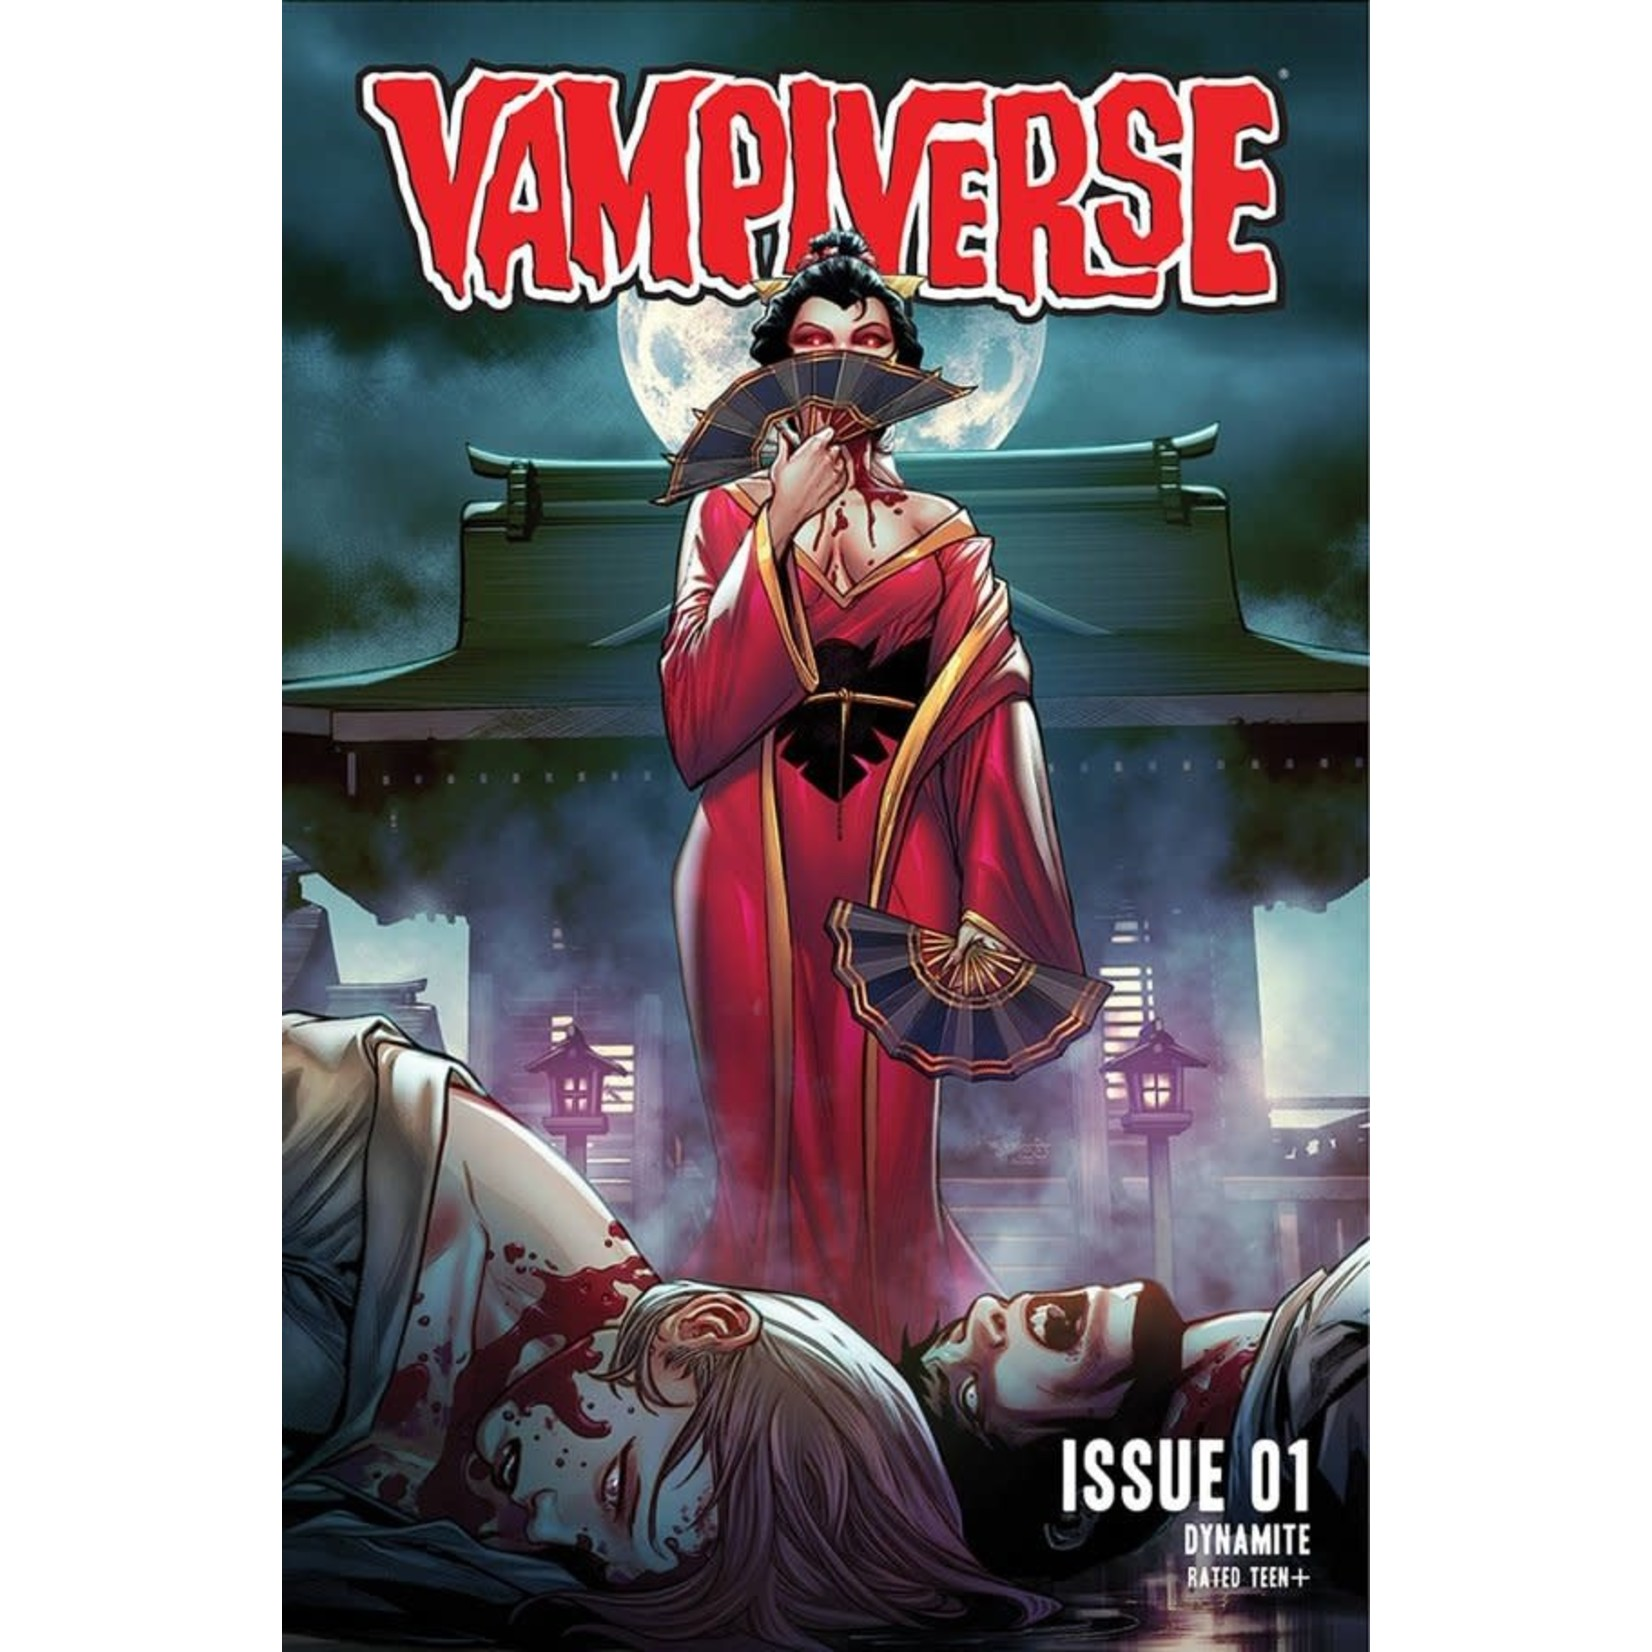 Dynamite Copy of Vampiverse #1 Cover D Hetrick